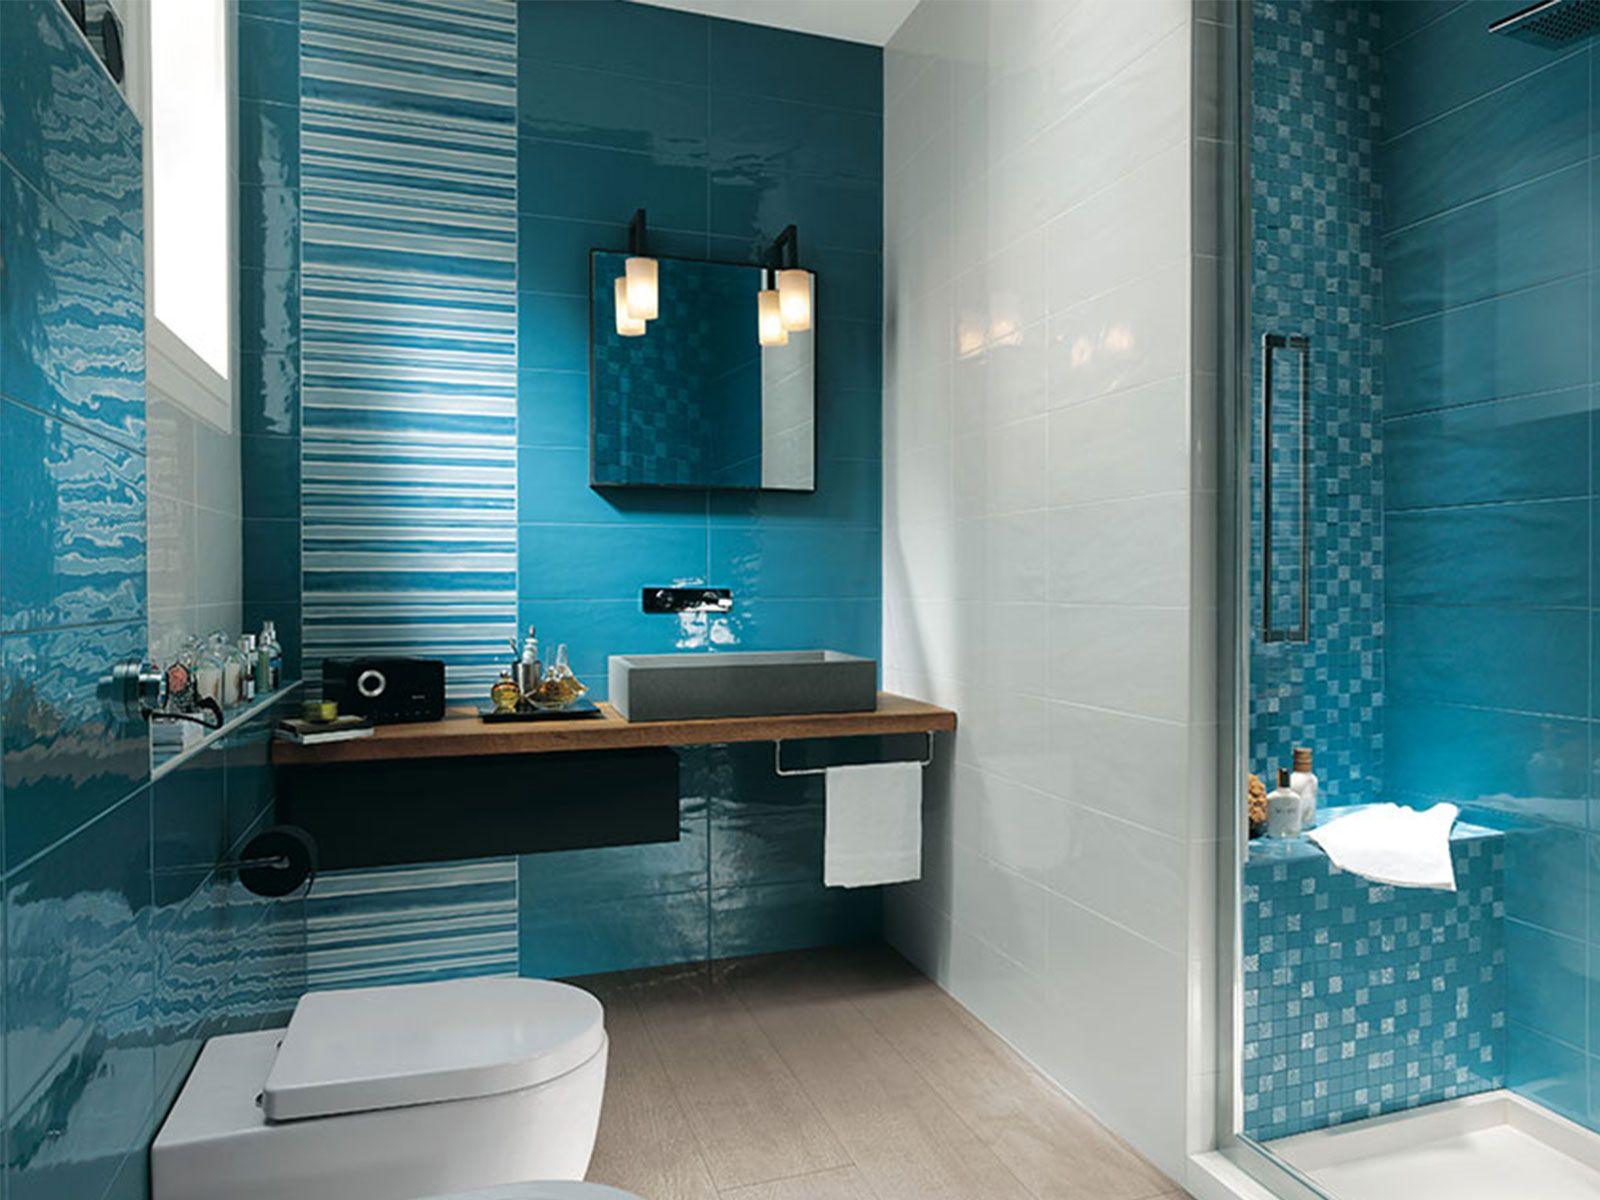 Aqua Blue Bathroom Designs Blue Bathroom Teal Bathroom Bathroom Decor